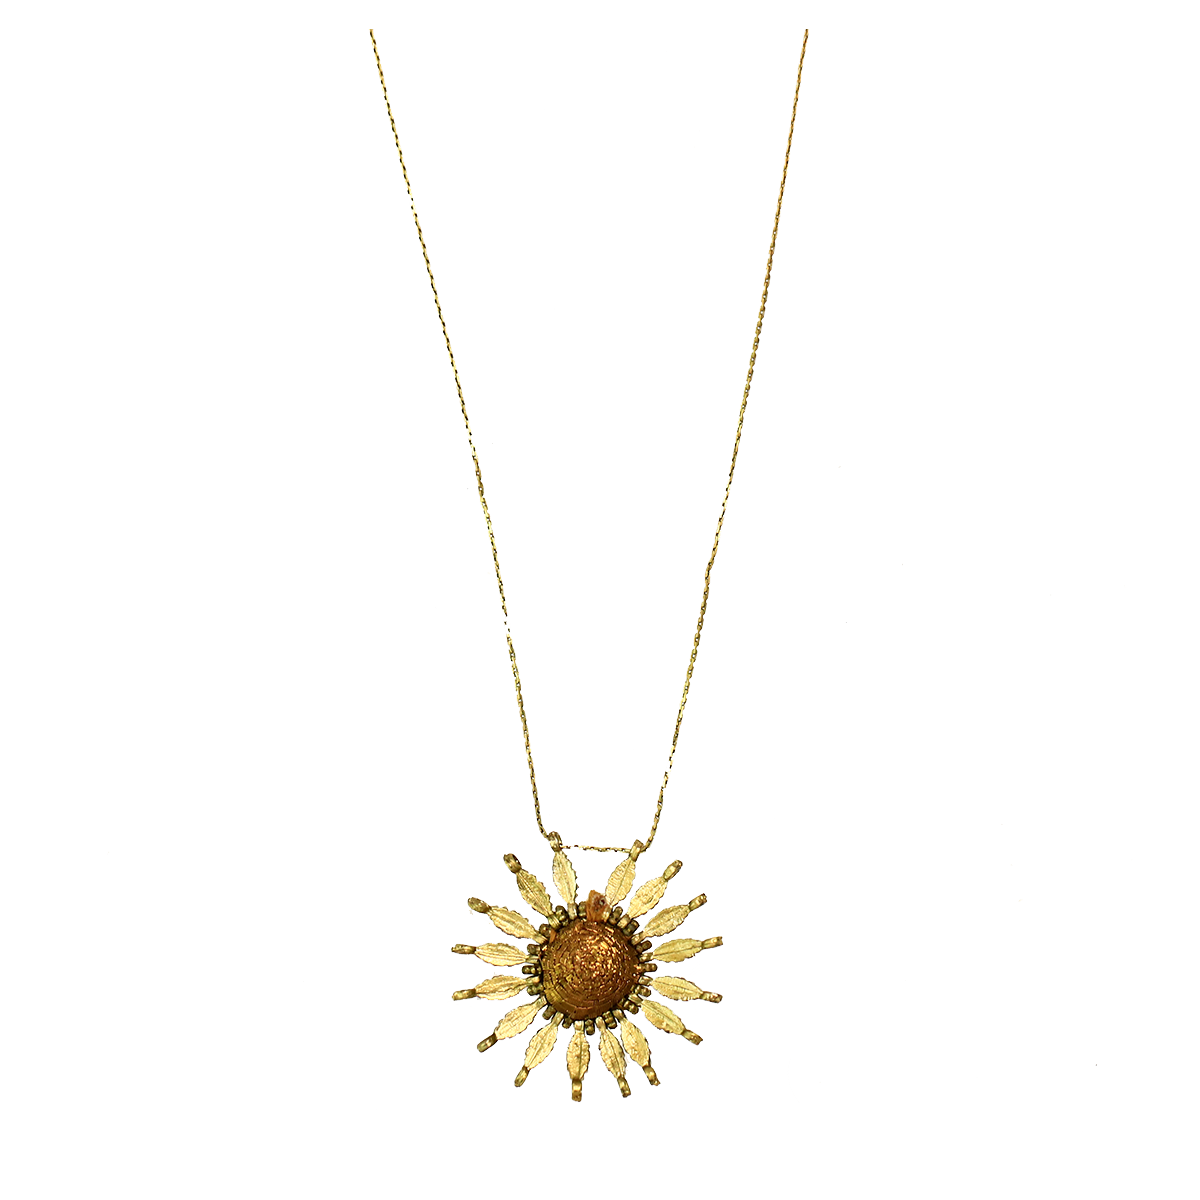 Bohemian Metal Flower Necklace - Gold